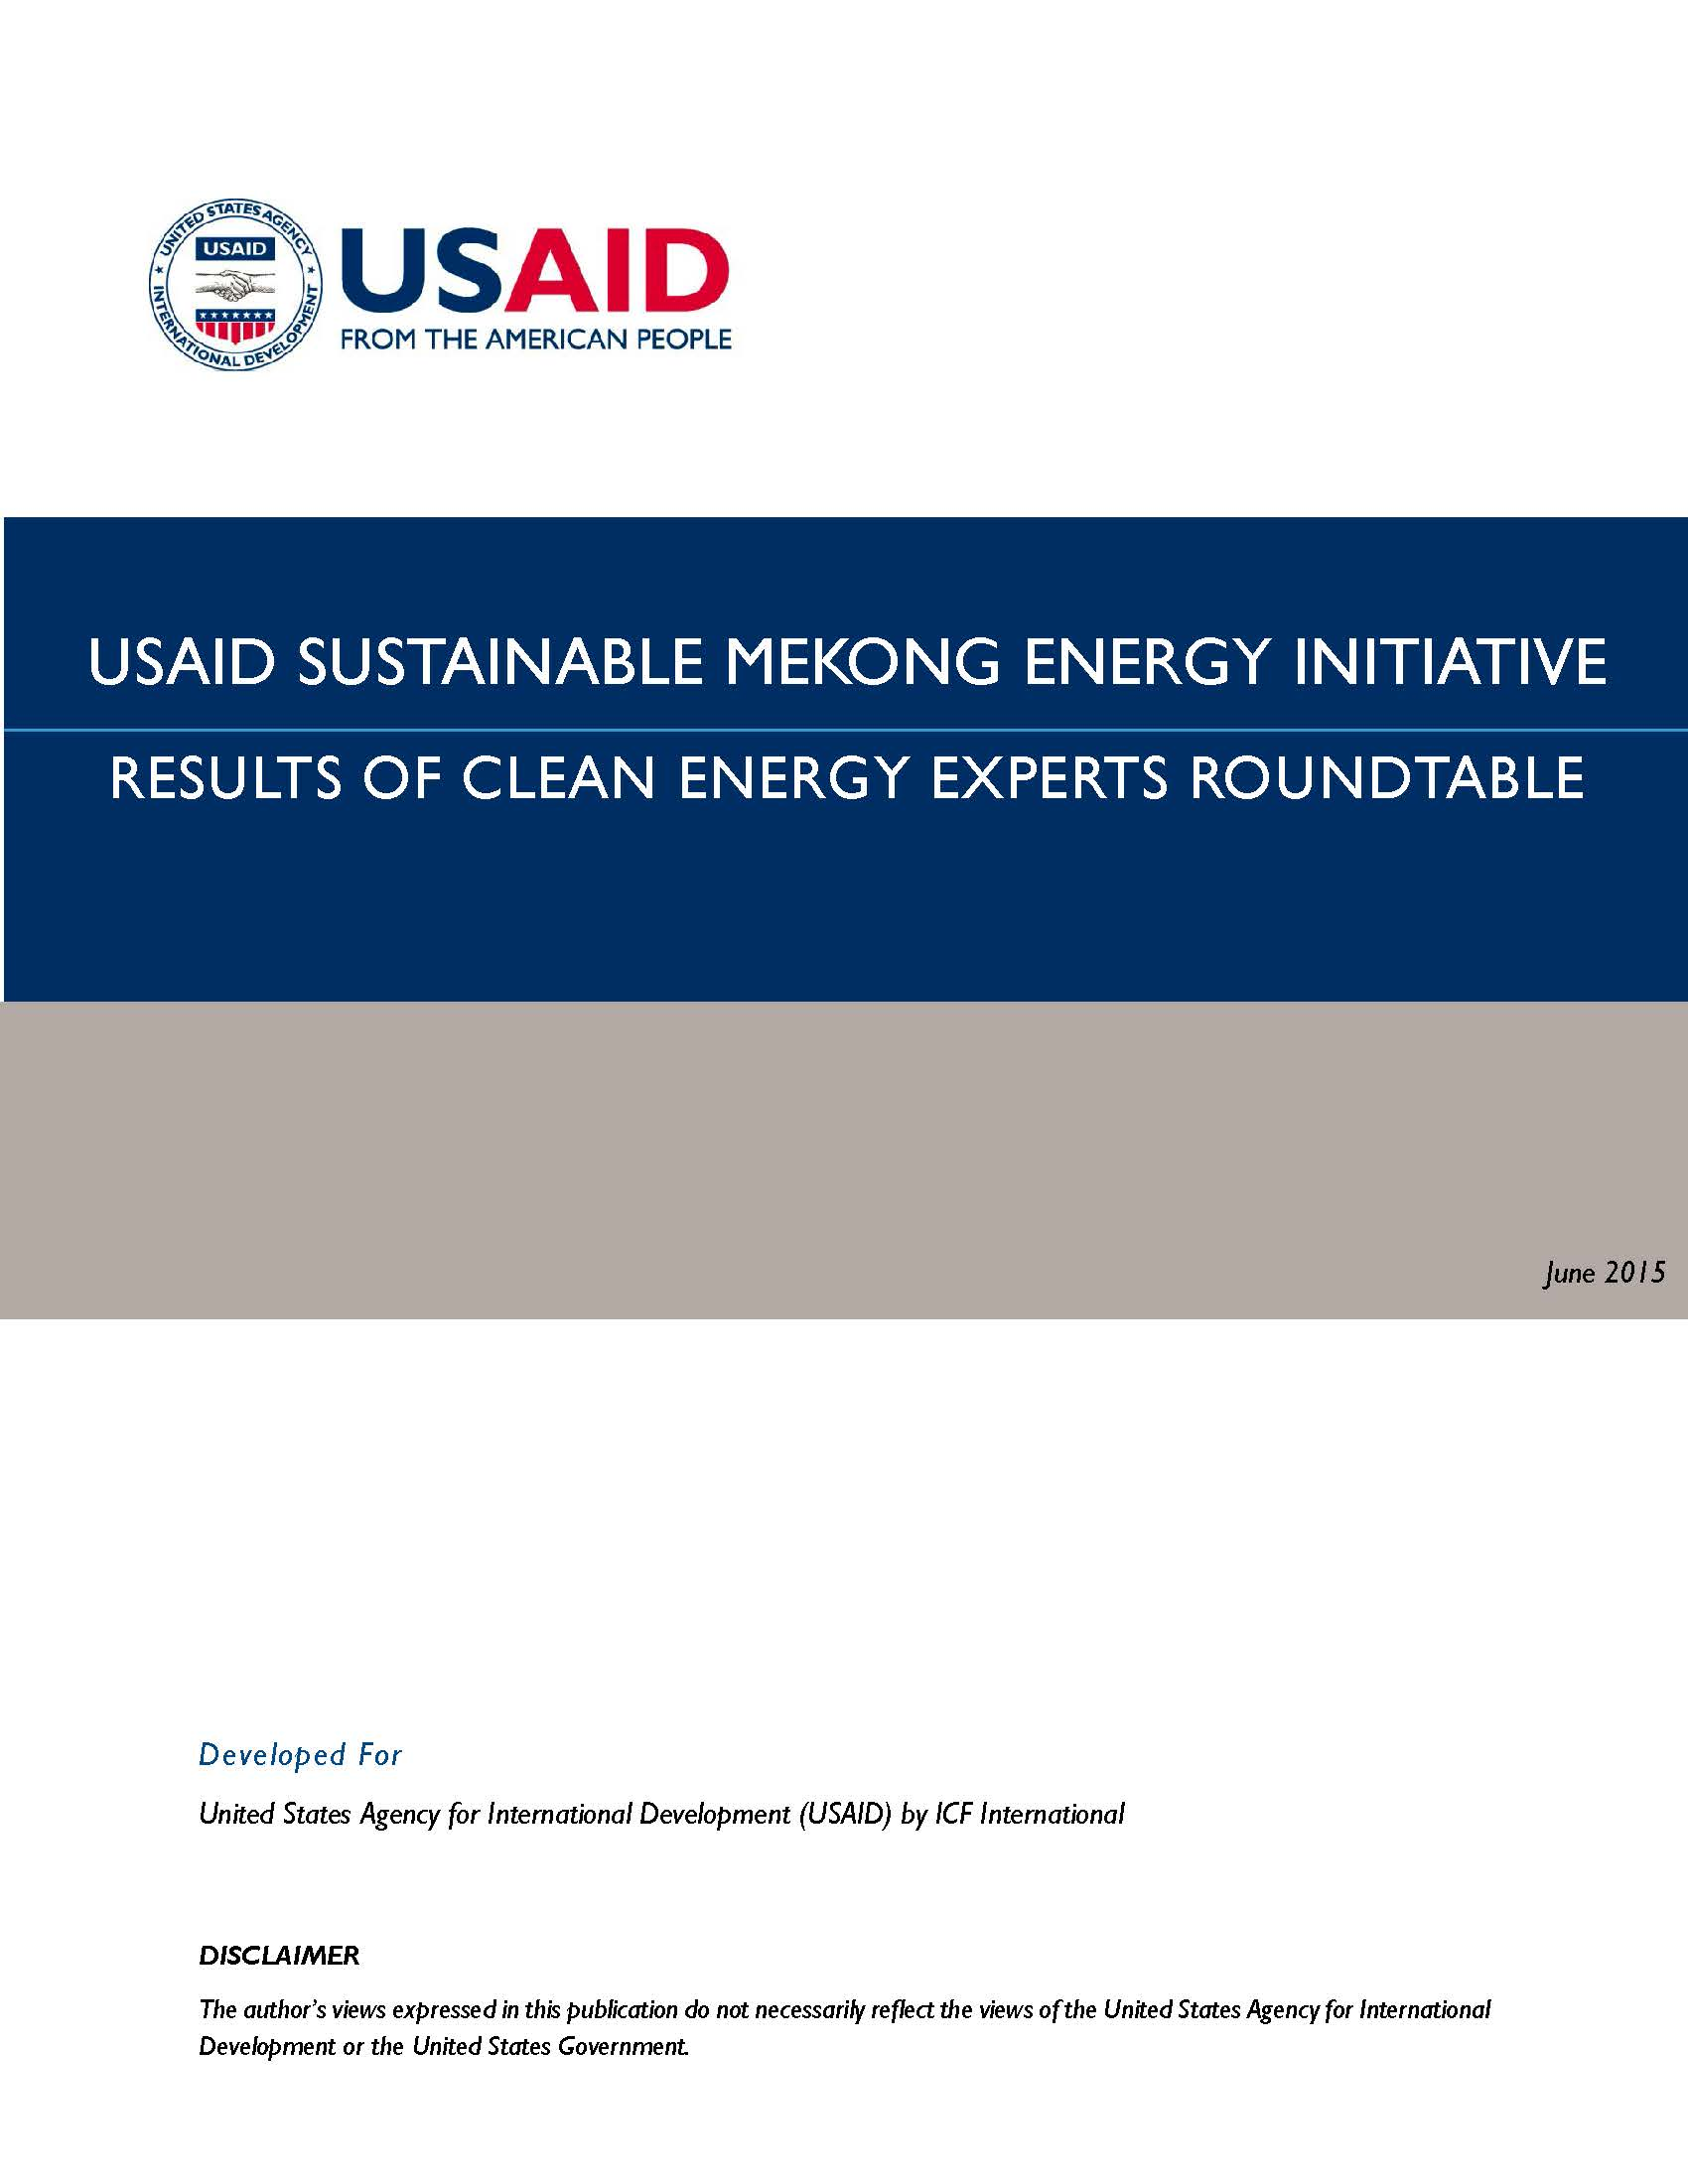 USAID Sustainable Mekong Energy Initiative Results of Clean Energy Experts Roundtable